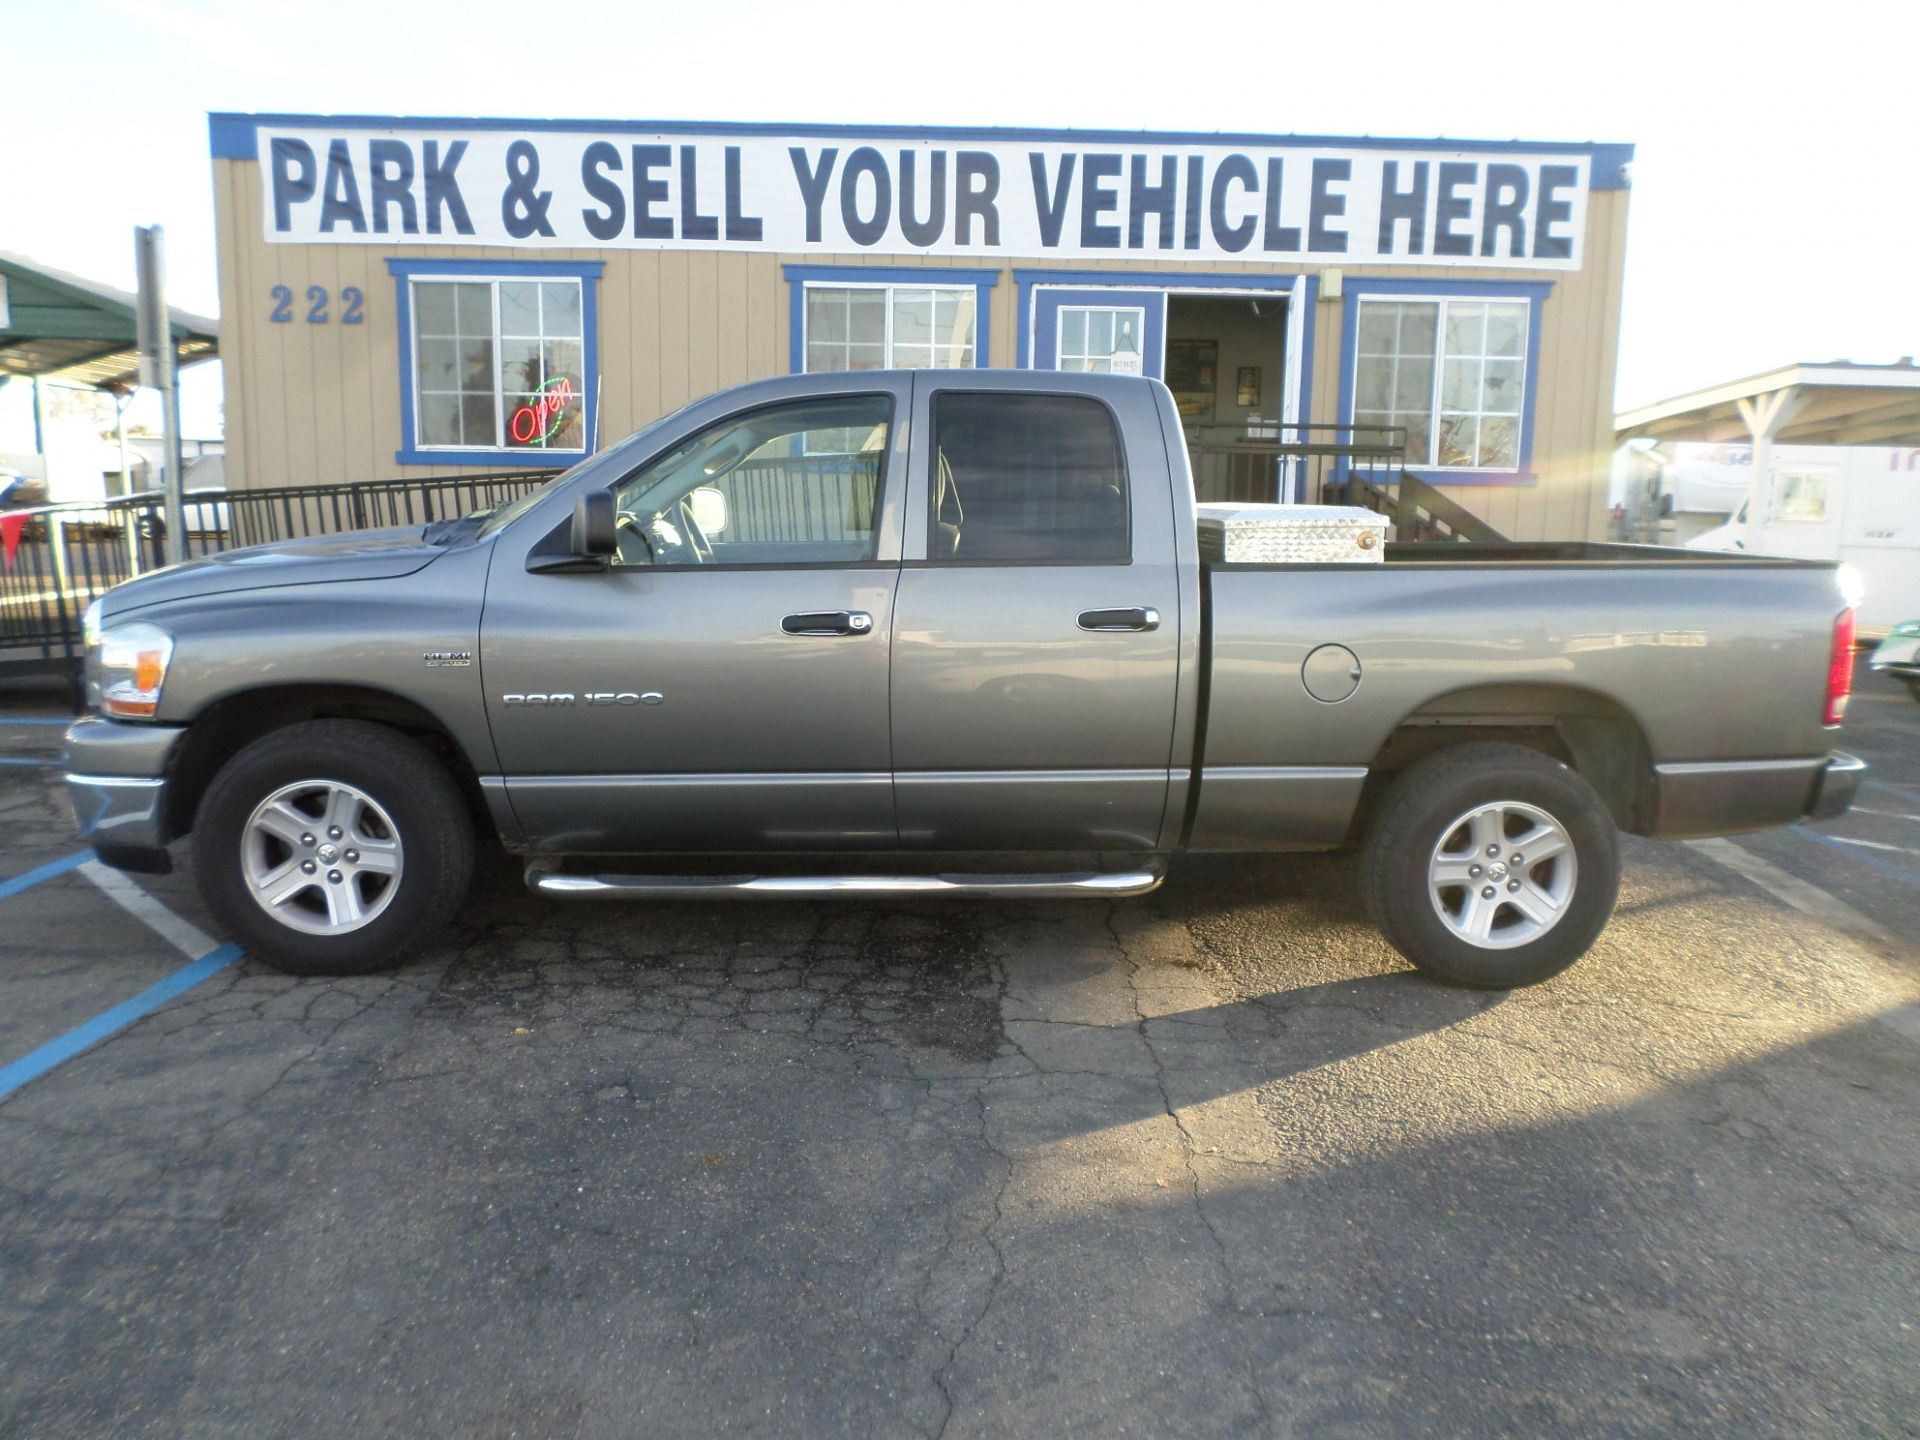 Truck For Sale 2005 Dodge Ram 1500 Quad Cab Short Bed In Lodi Stockton Ca Ram 1500 Quad Cab Ram 1500 Dodge Ram 1500